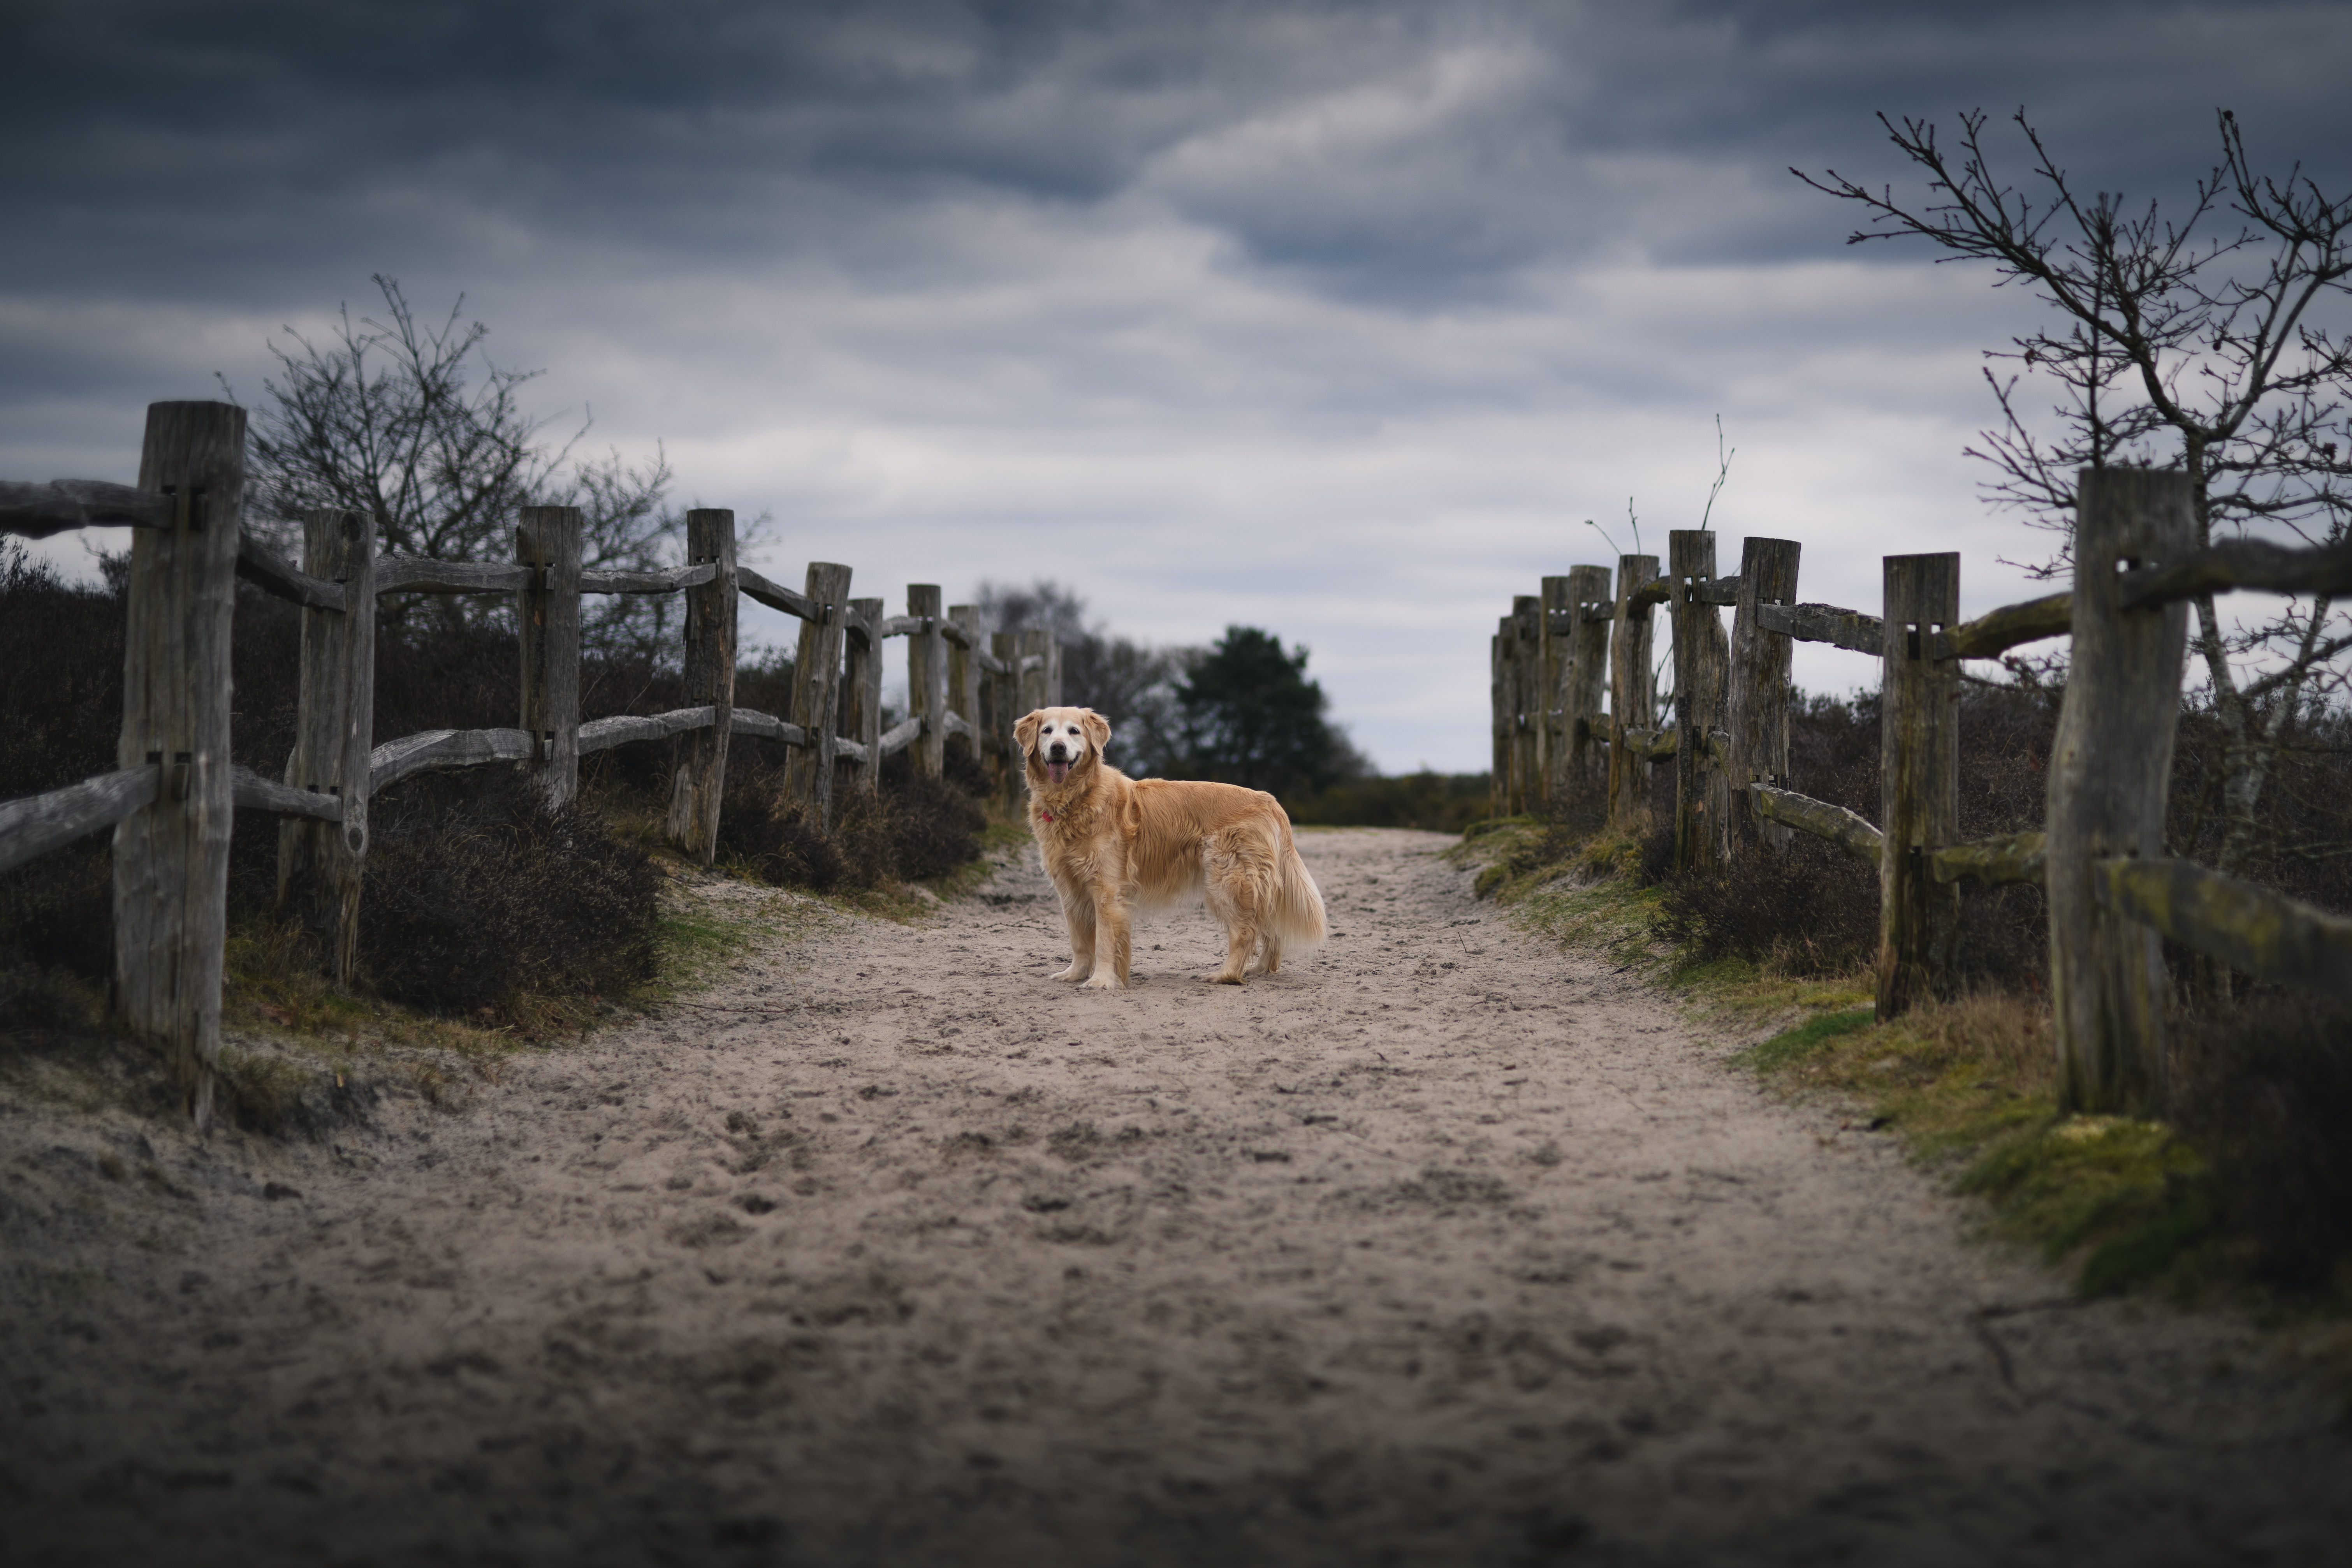 dog standing between wooden fence under dark cloudy sky